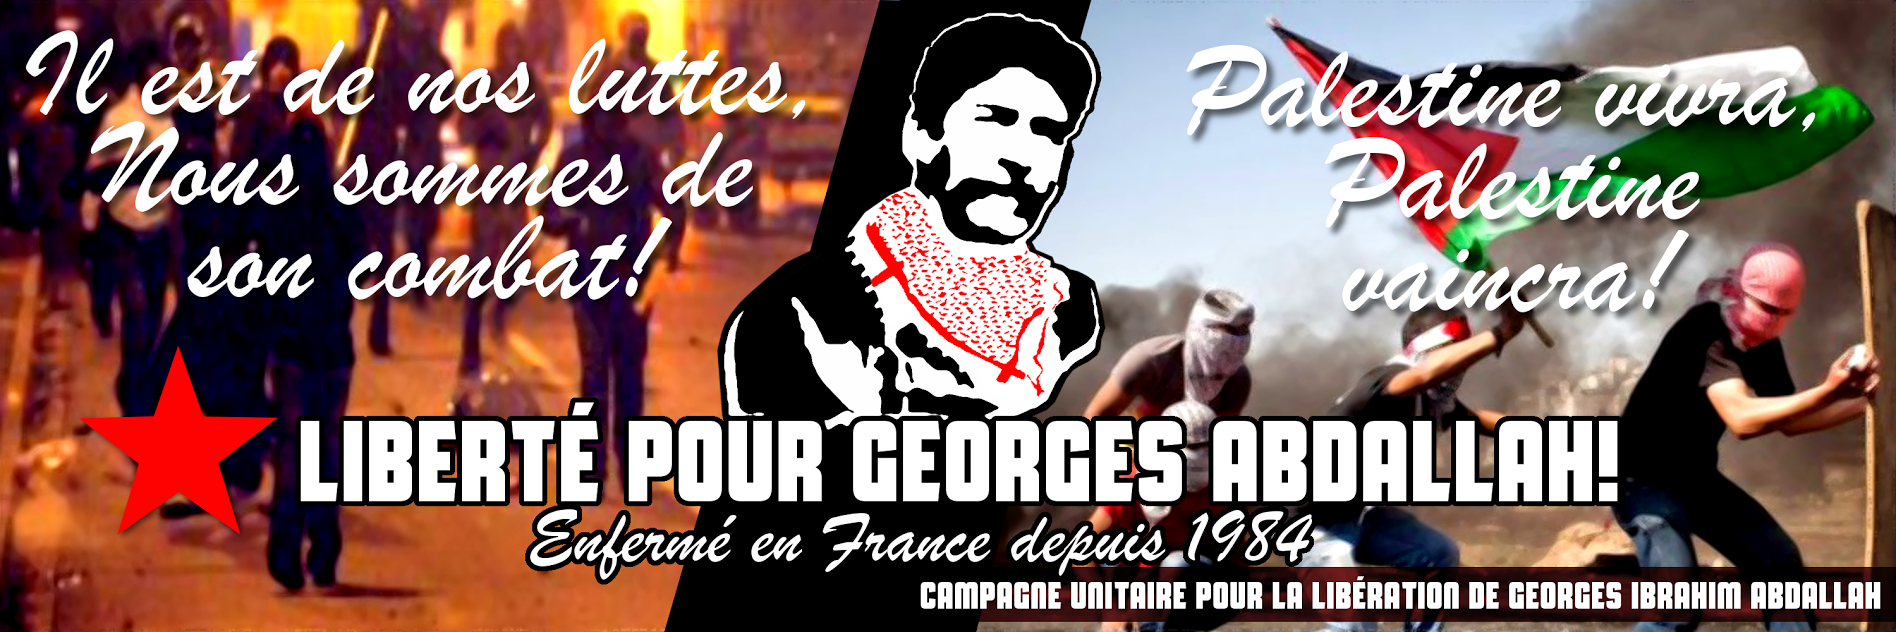 manif georges